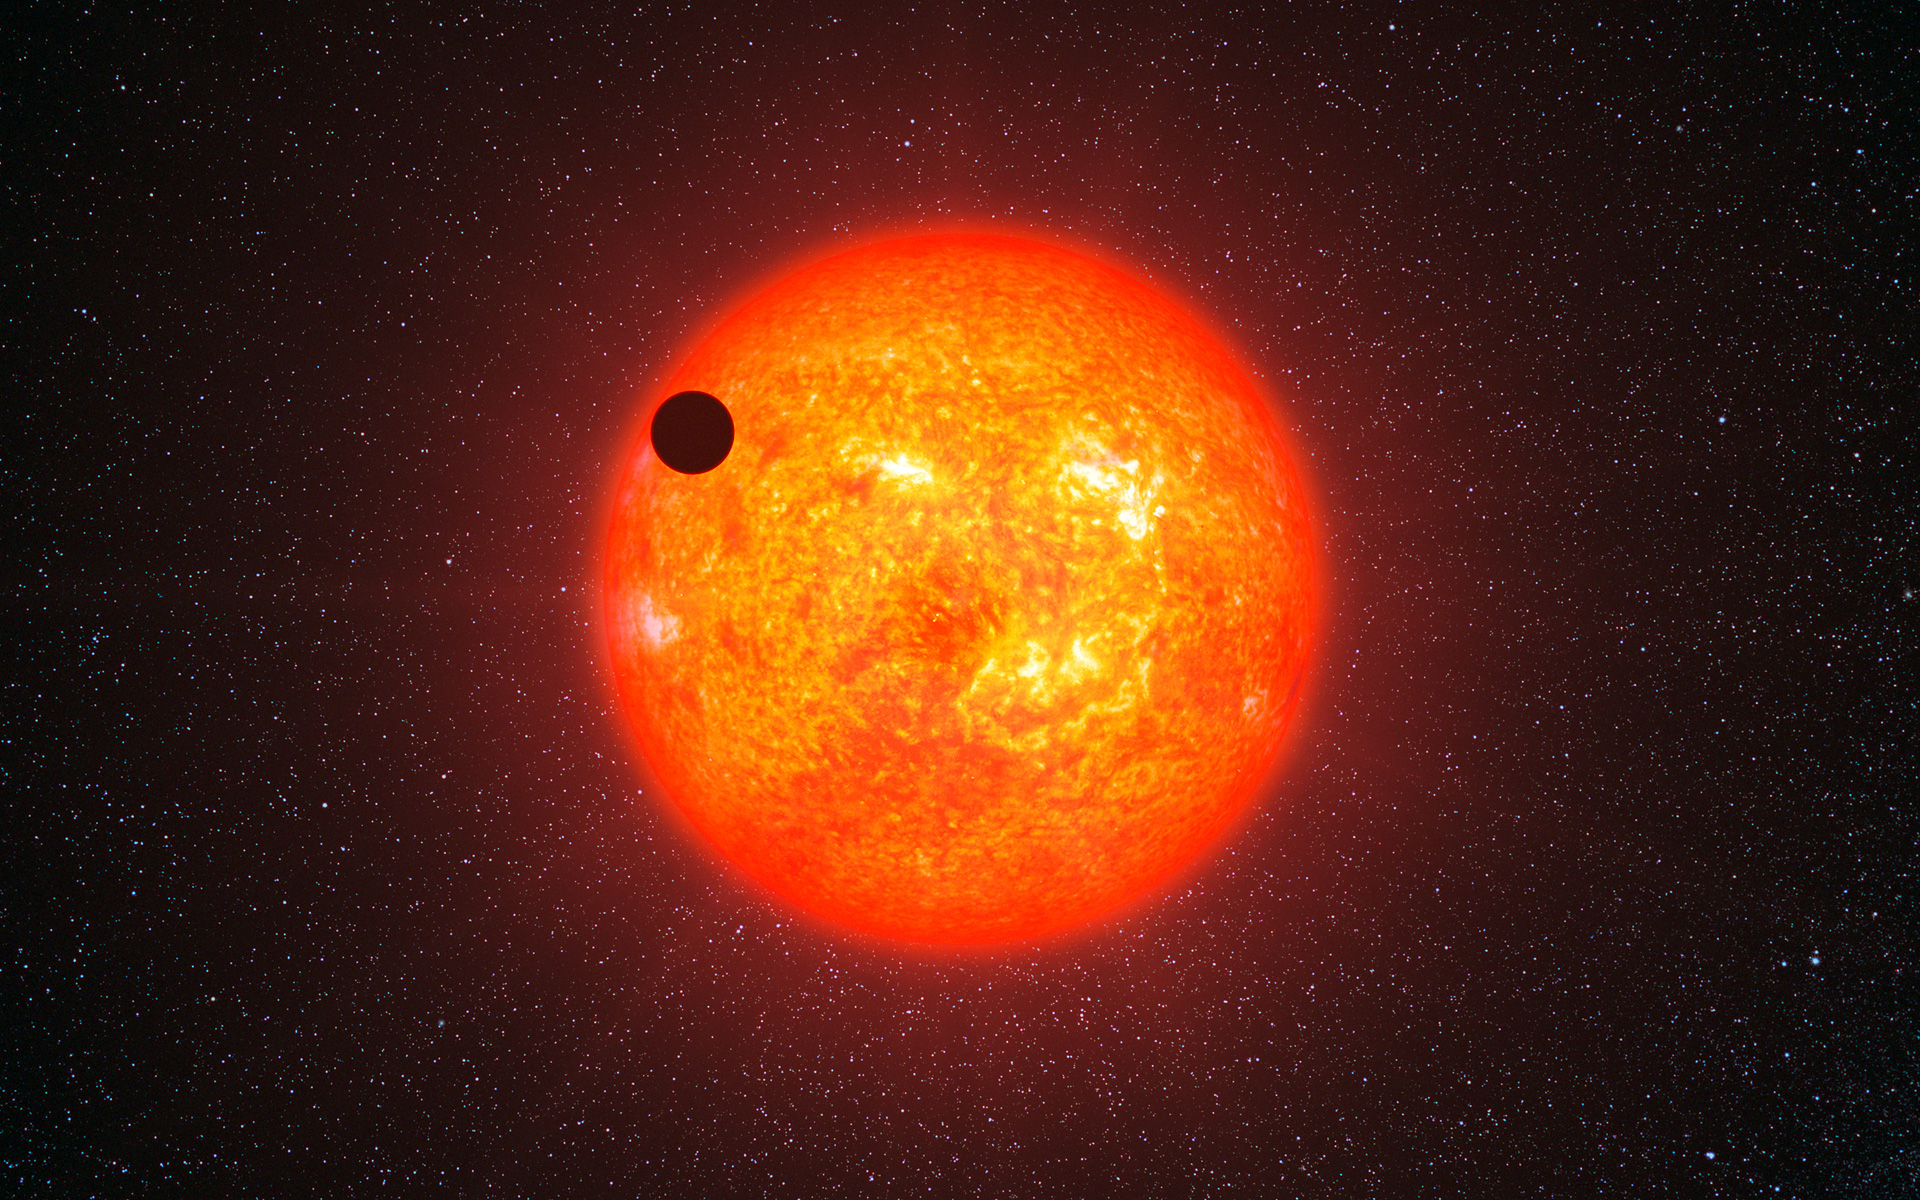 An artist's impression of a super-earth extra-solar planet transiting its home star - Image Credit: ESO/L. Calçada via Wikimedia Commons